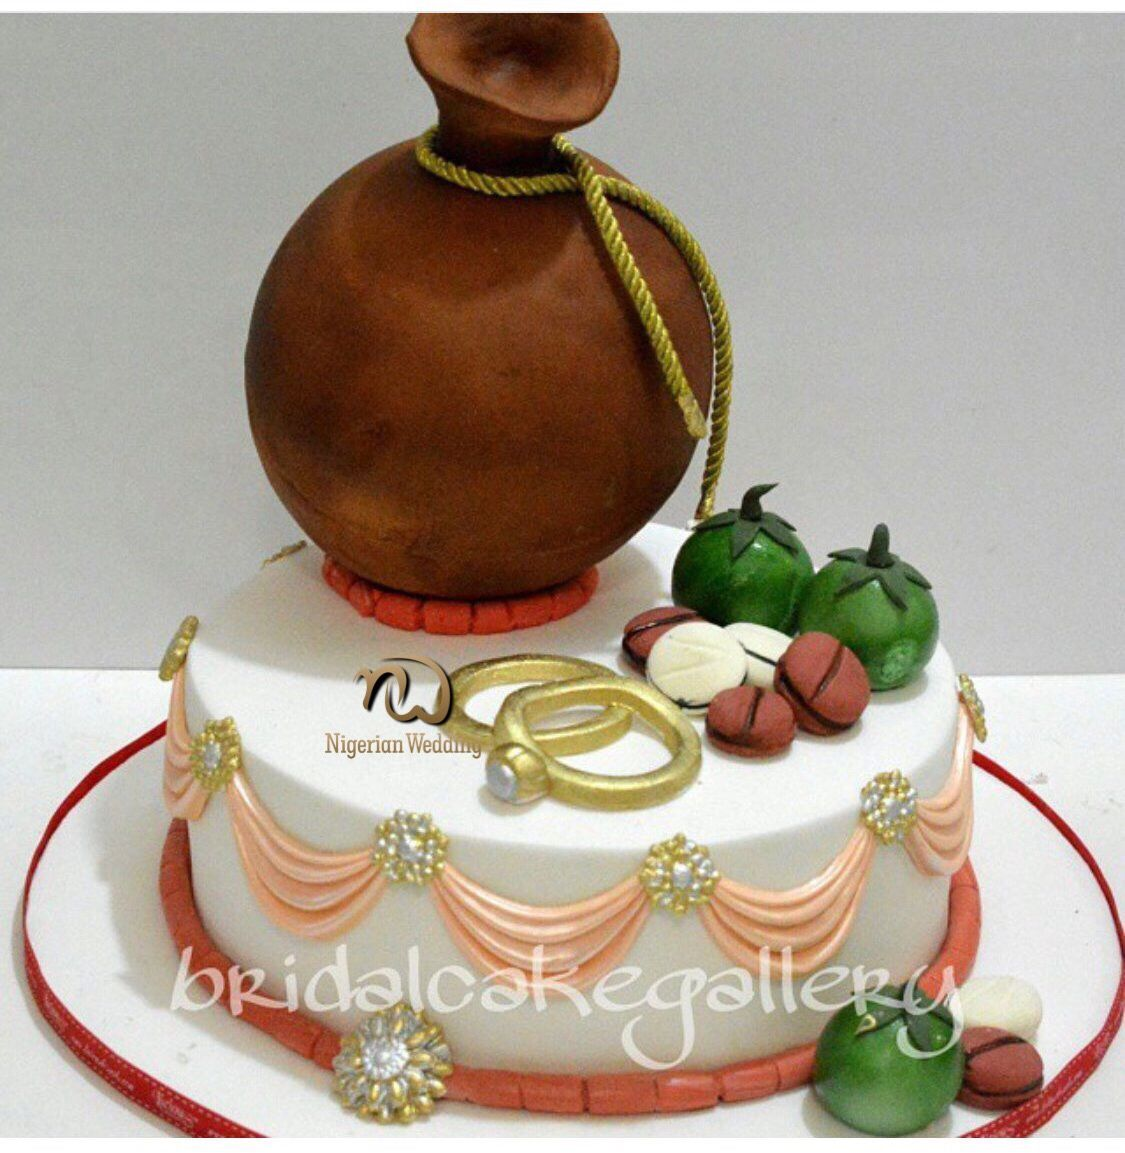 Nigerian traditional wedding cake designs Simple and